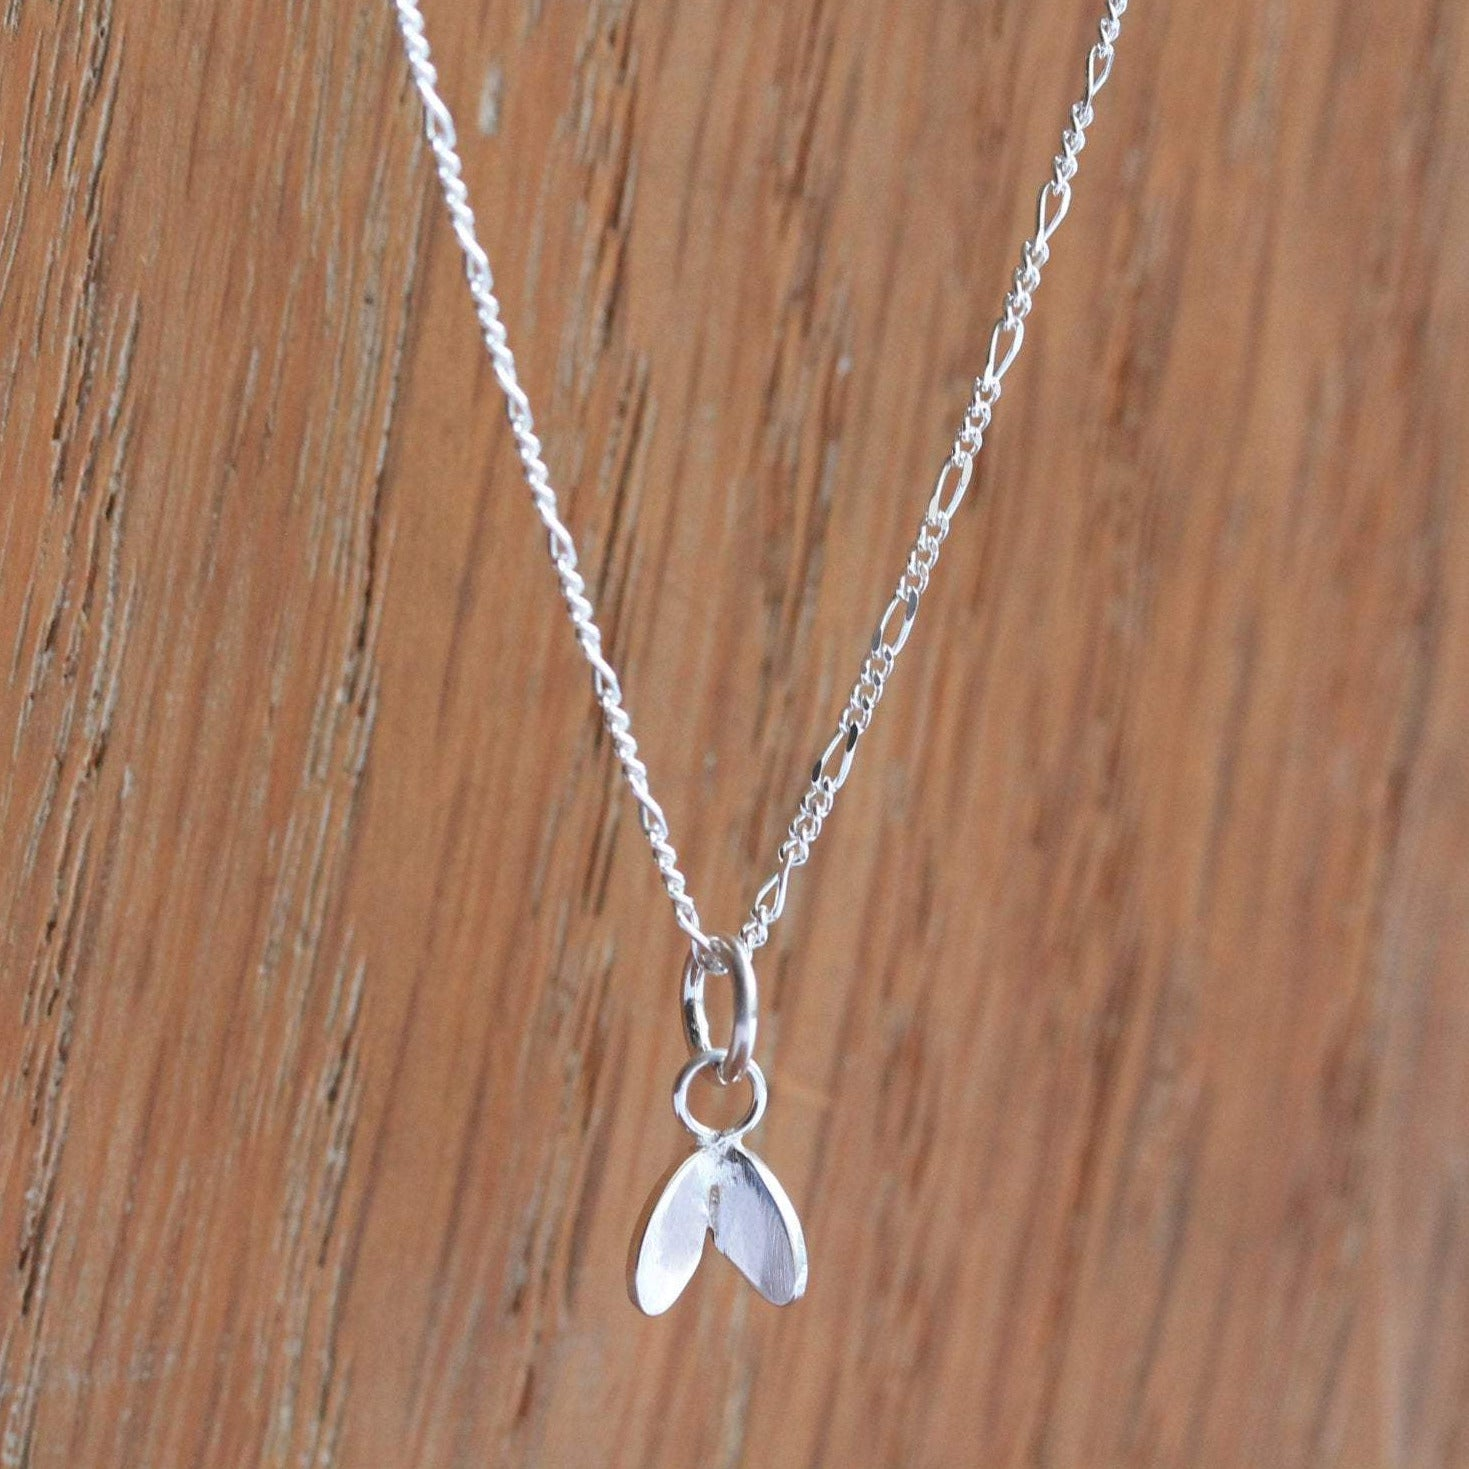 Cress Leaf Necklace